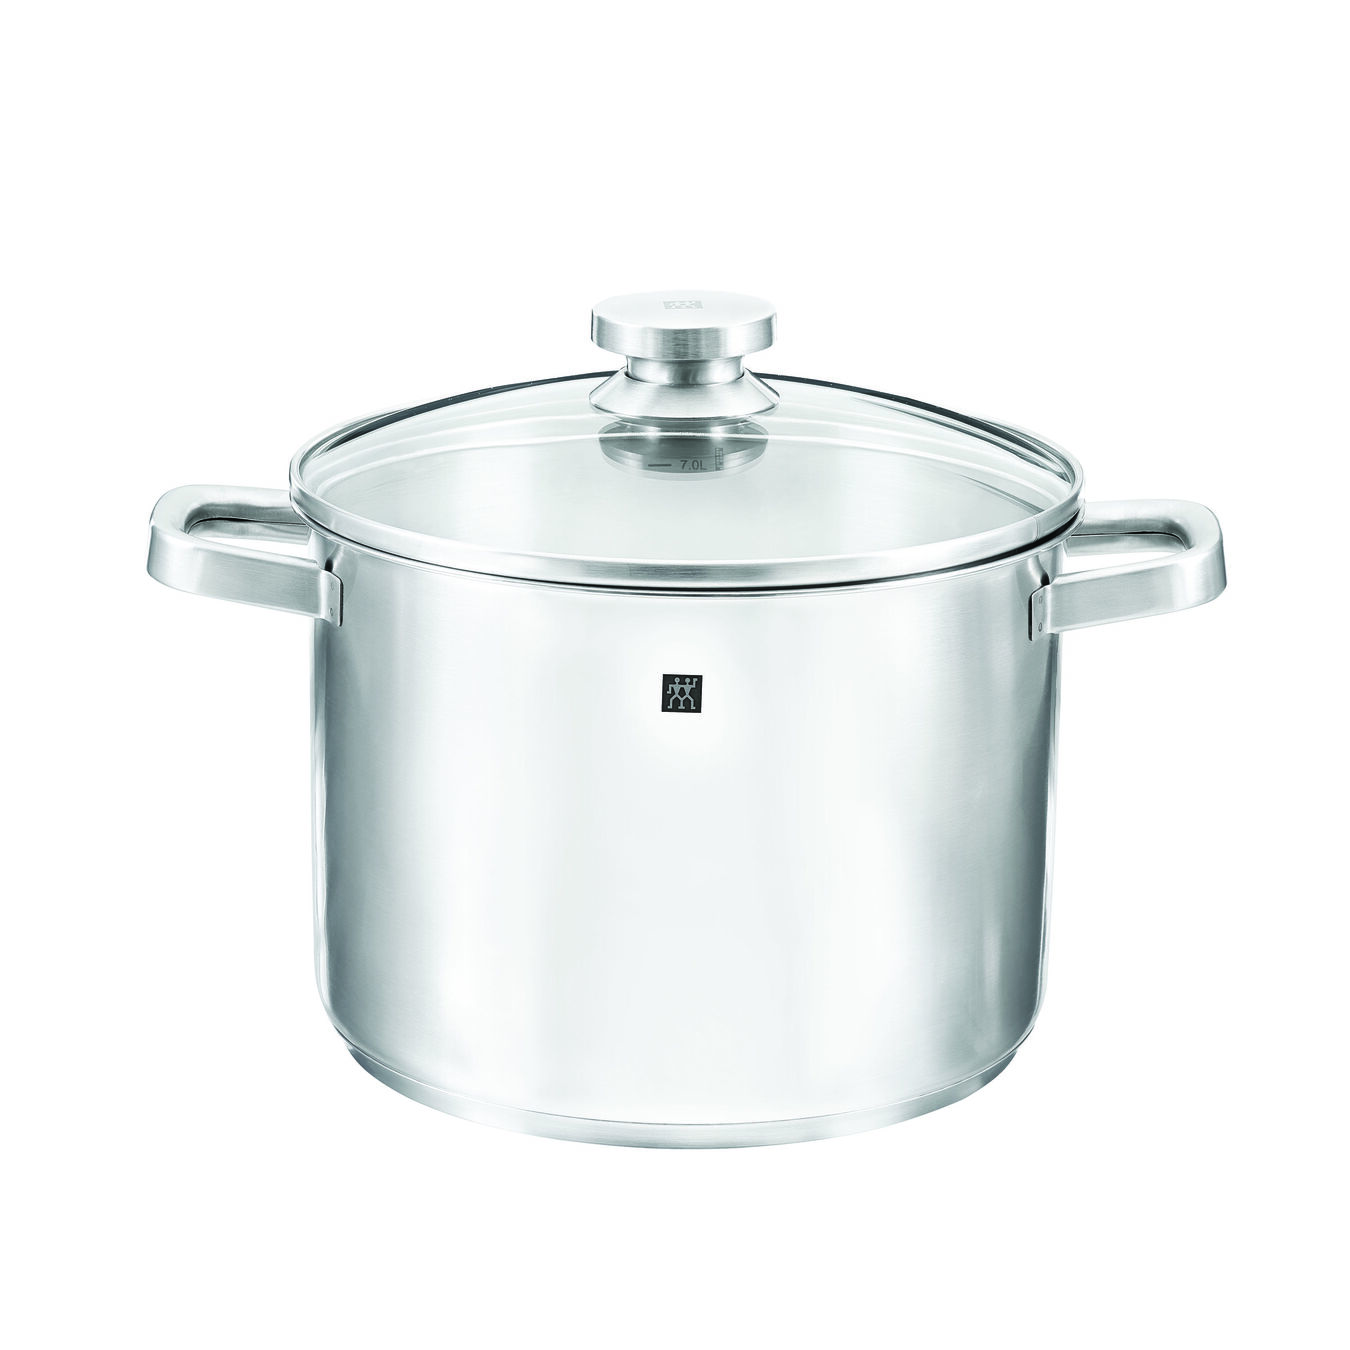 18/10 Stainless Steel 7.8L/8.2QT Stock Pot with Lid,,large 1